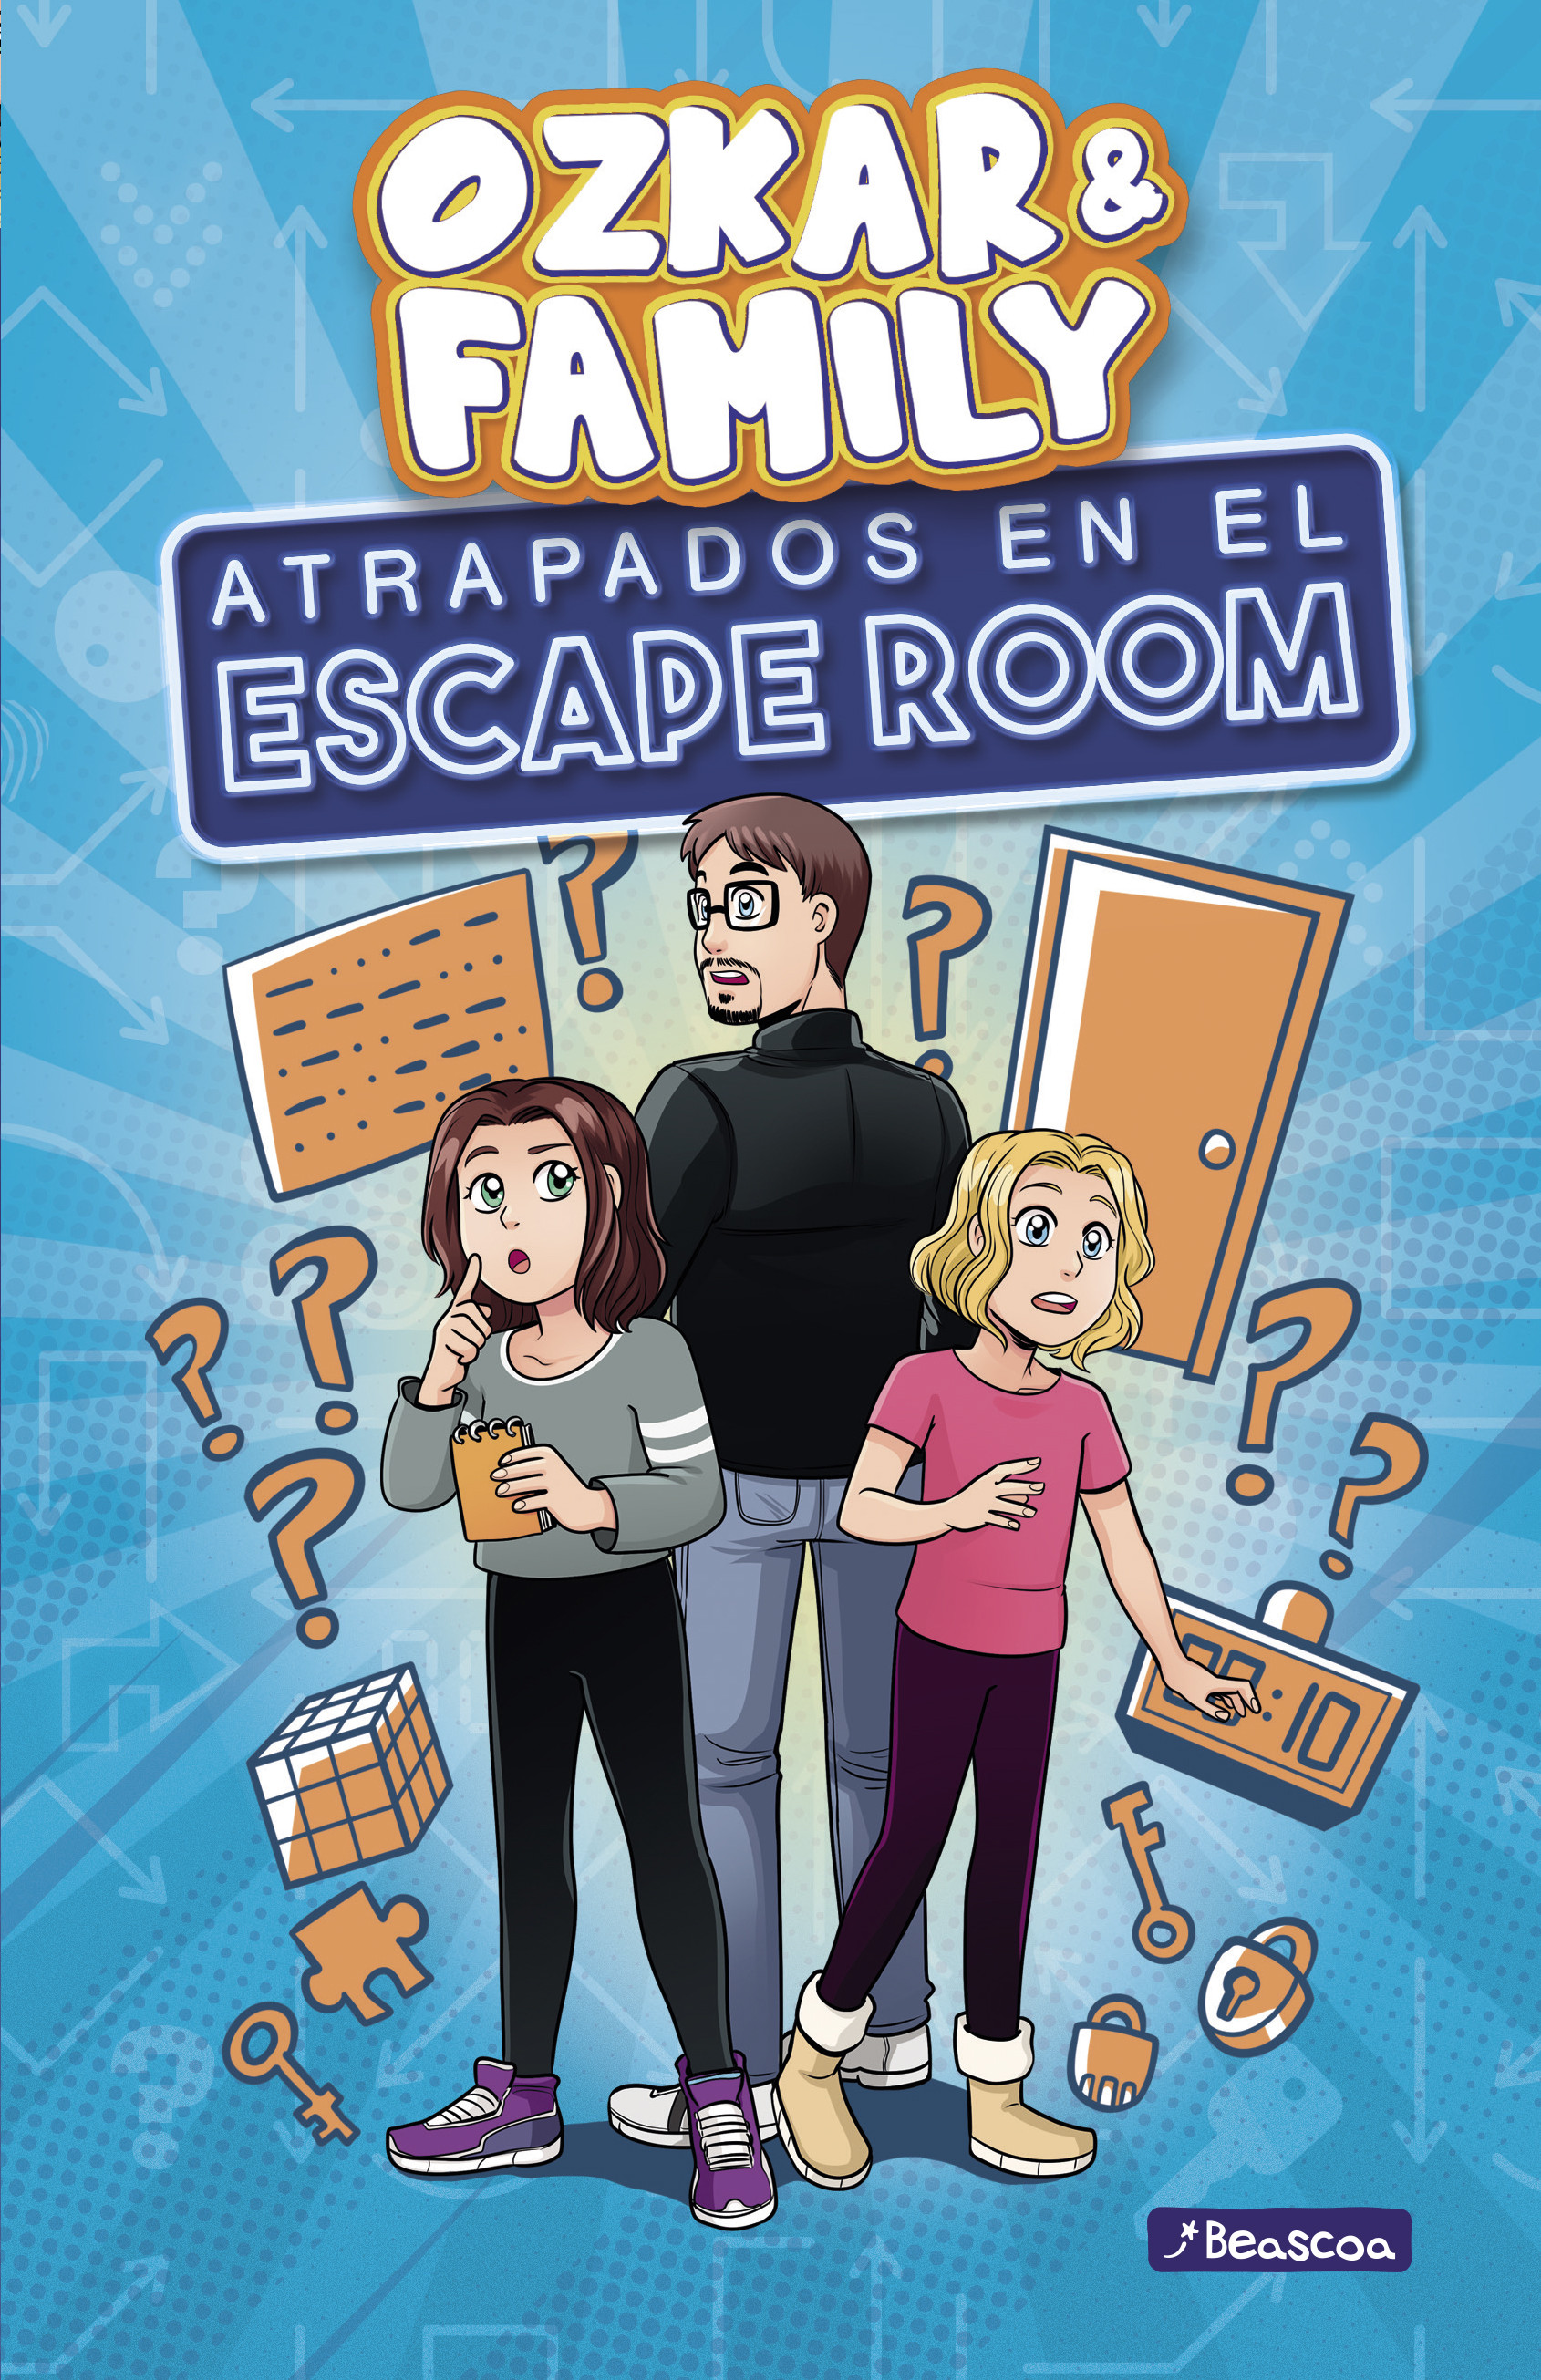 Ozkar e hijas. Escape Room